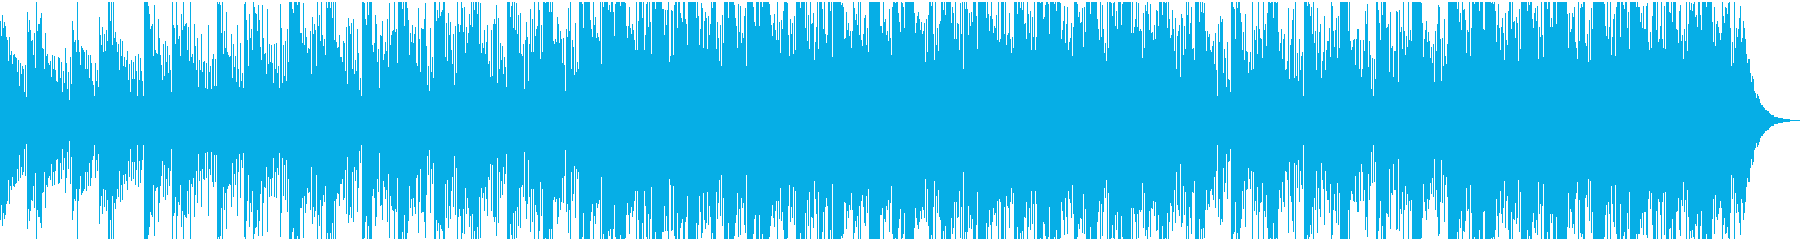 Abstract's reproduced waveform